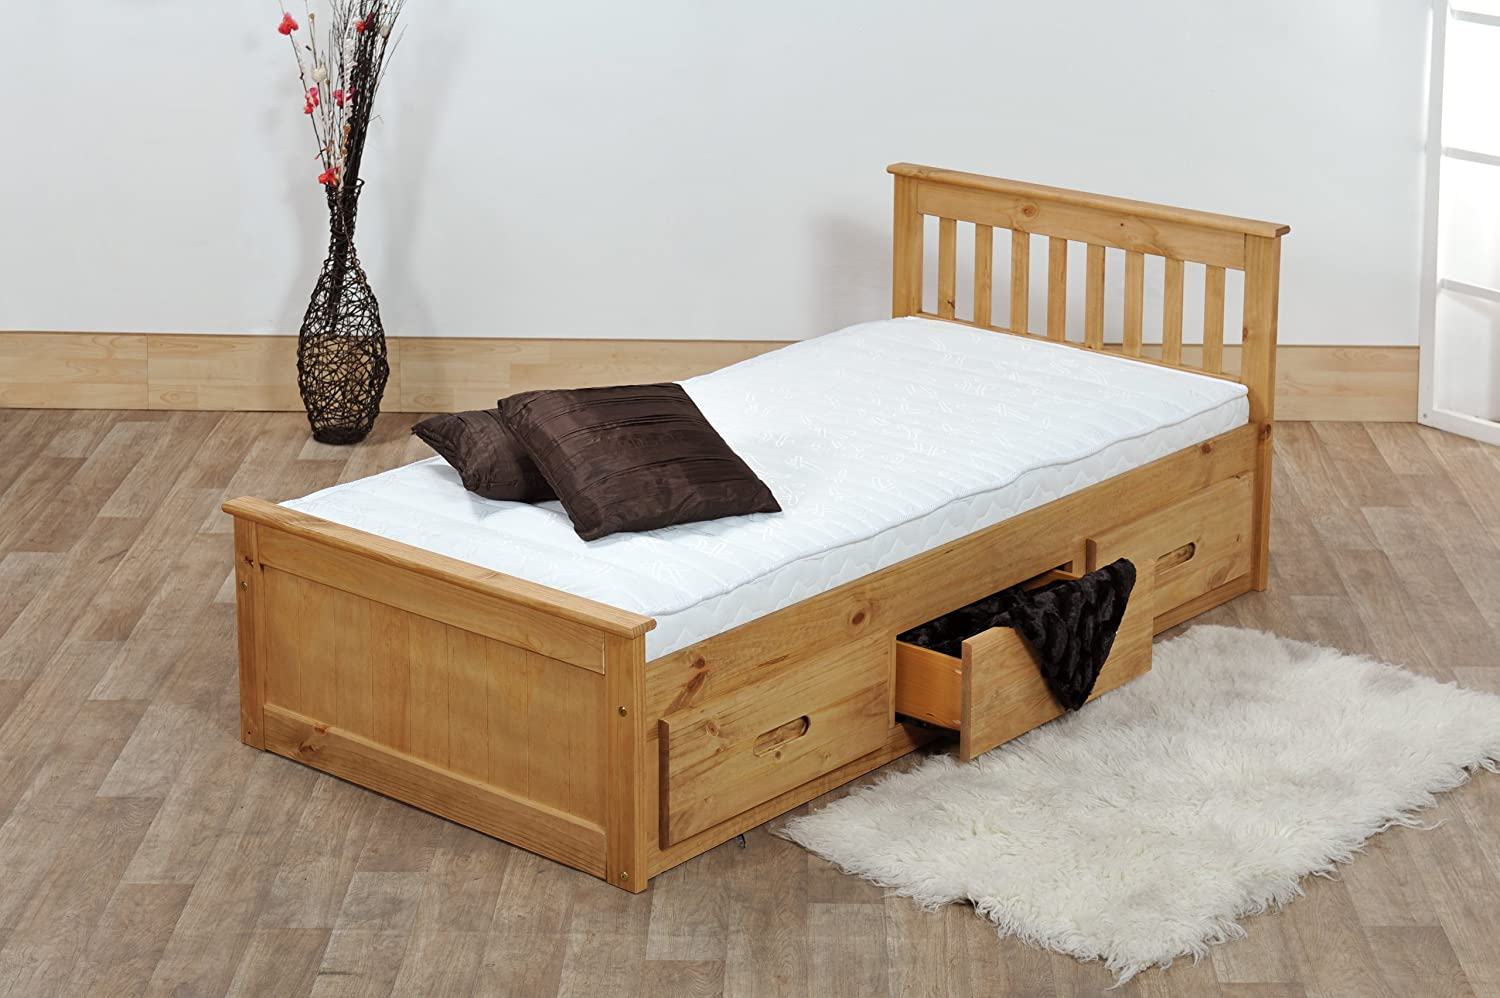 Single bed frame with drawers - 3ft Single Captain Cabin Storage Solid Pine Wooden Bed Bedframe Waxed Pine Finish Made From High Quality Brazilian Sustainable Pine Amazon Co Uk